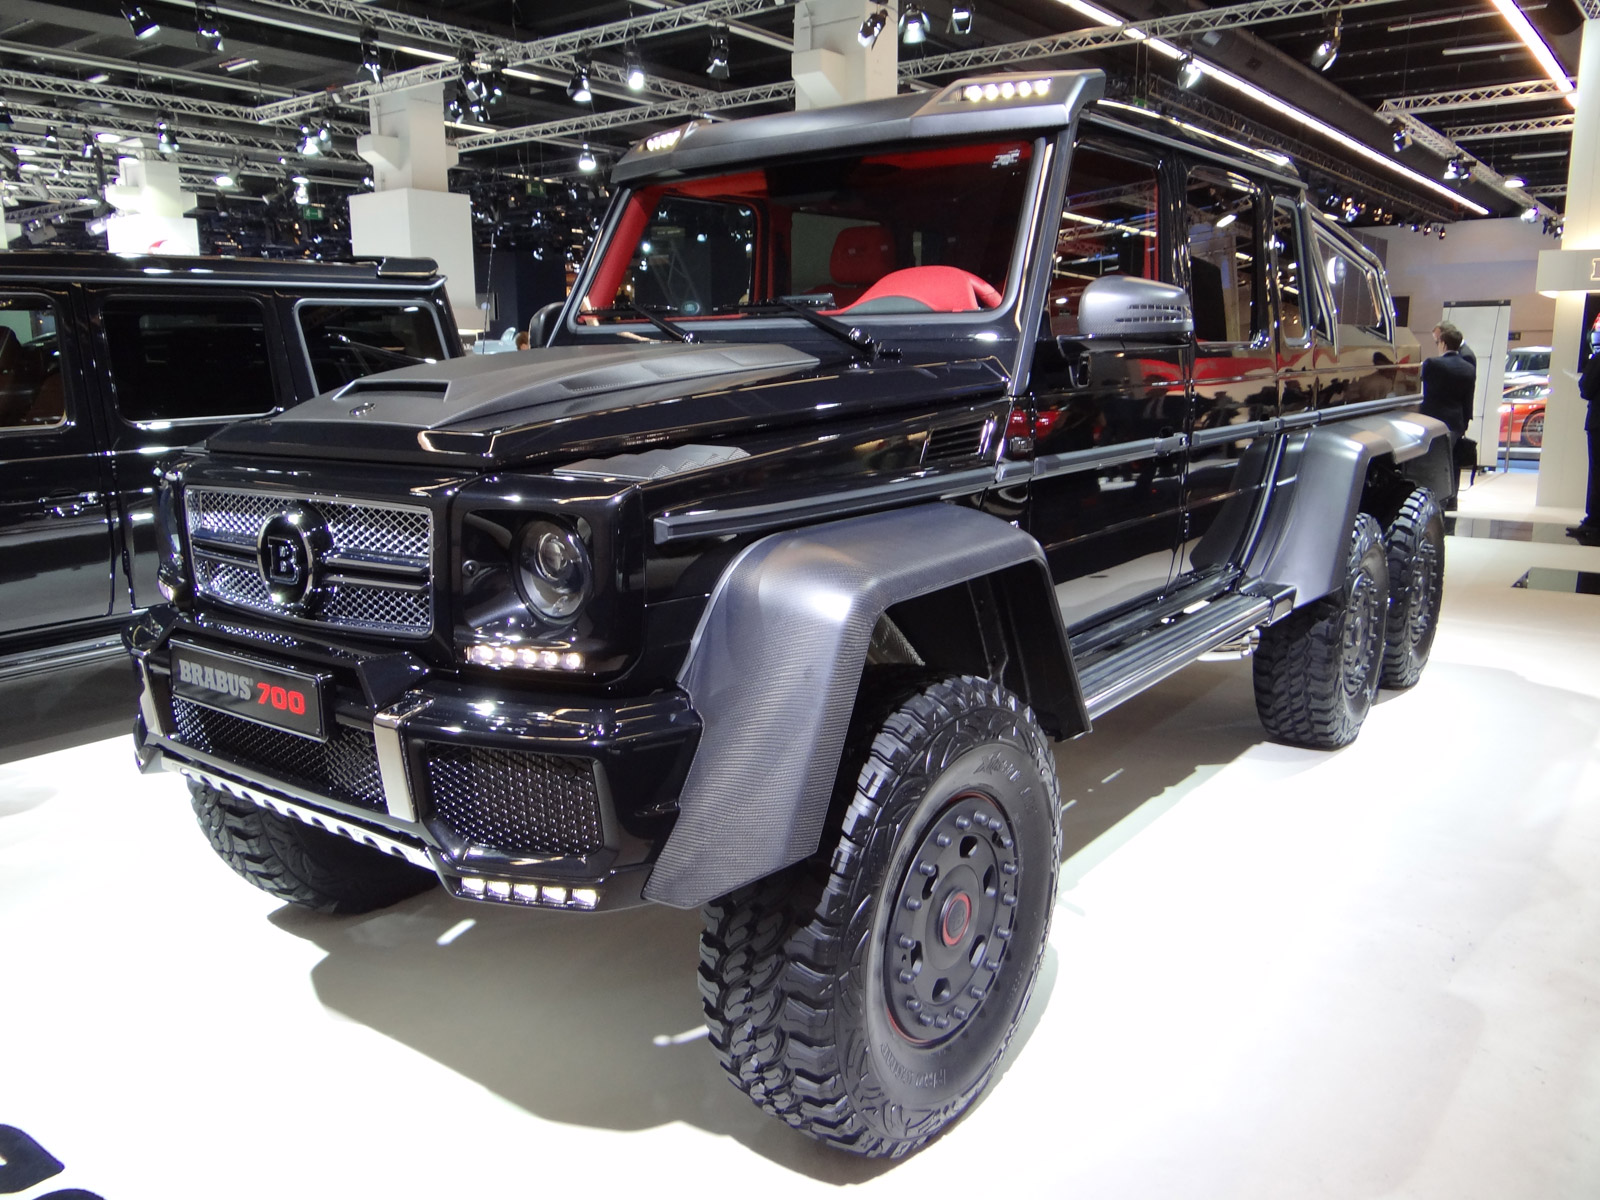 Brabus b63s porsche 918 spyder furai concept in flames for Mercedes benz amg 6x6 price